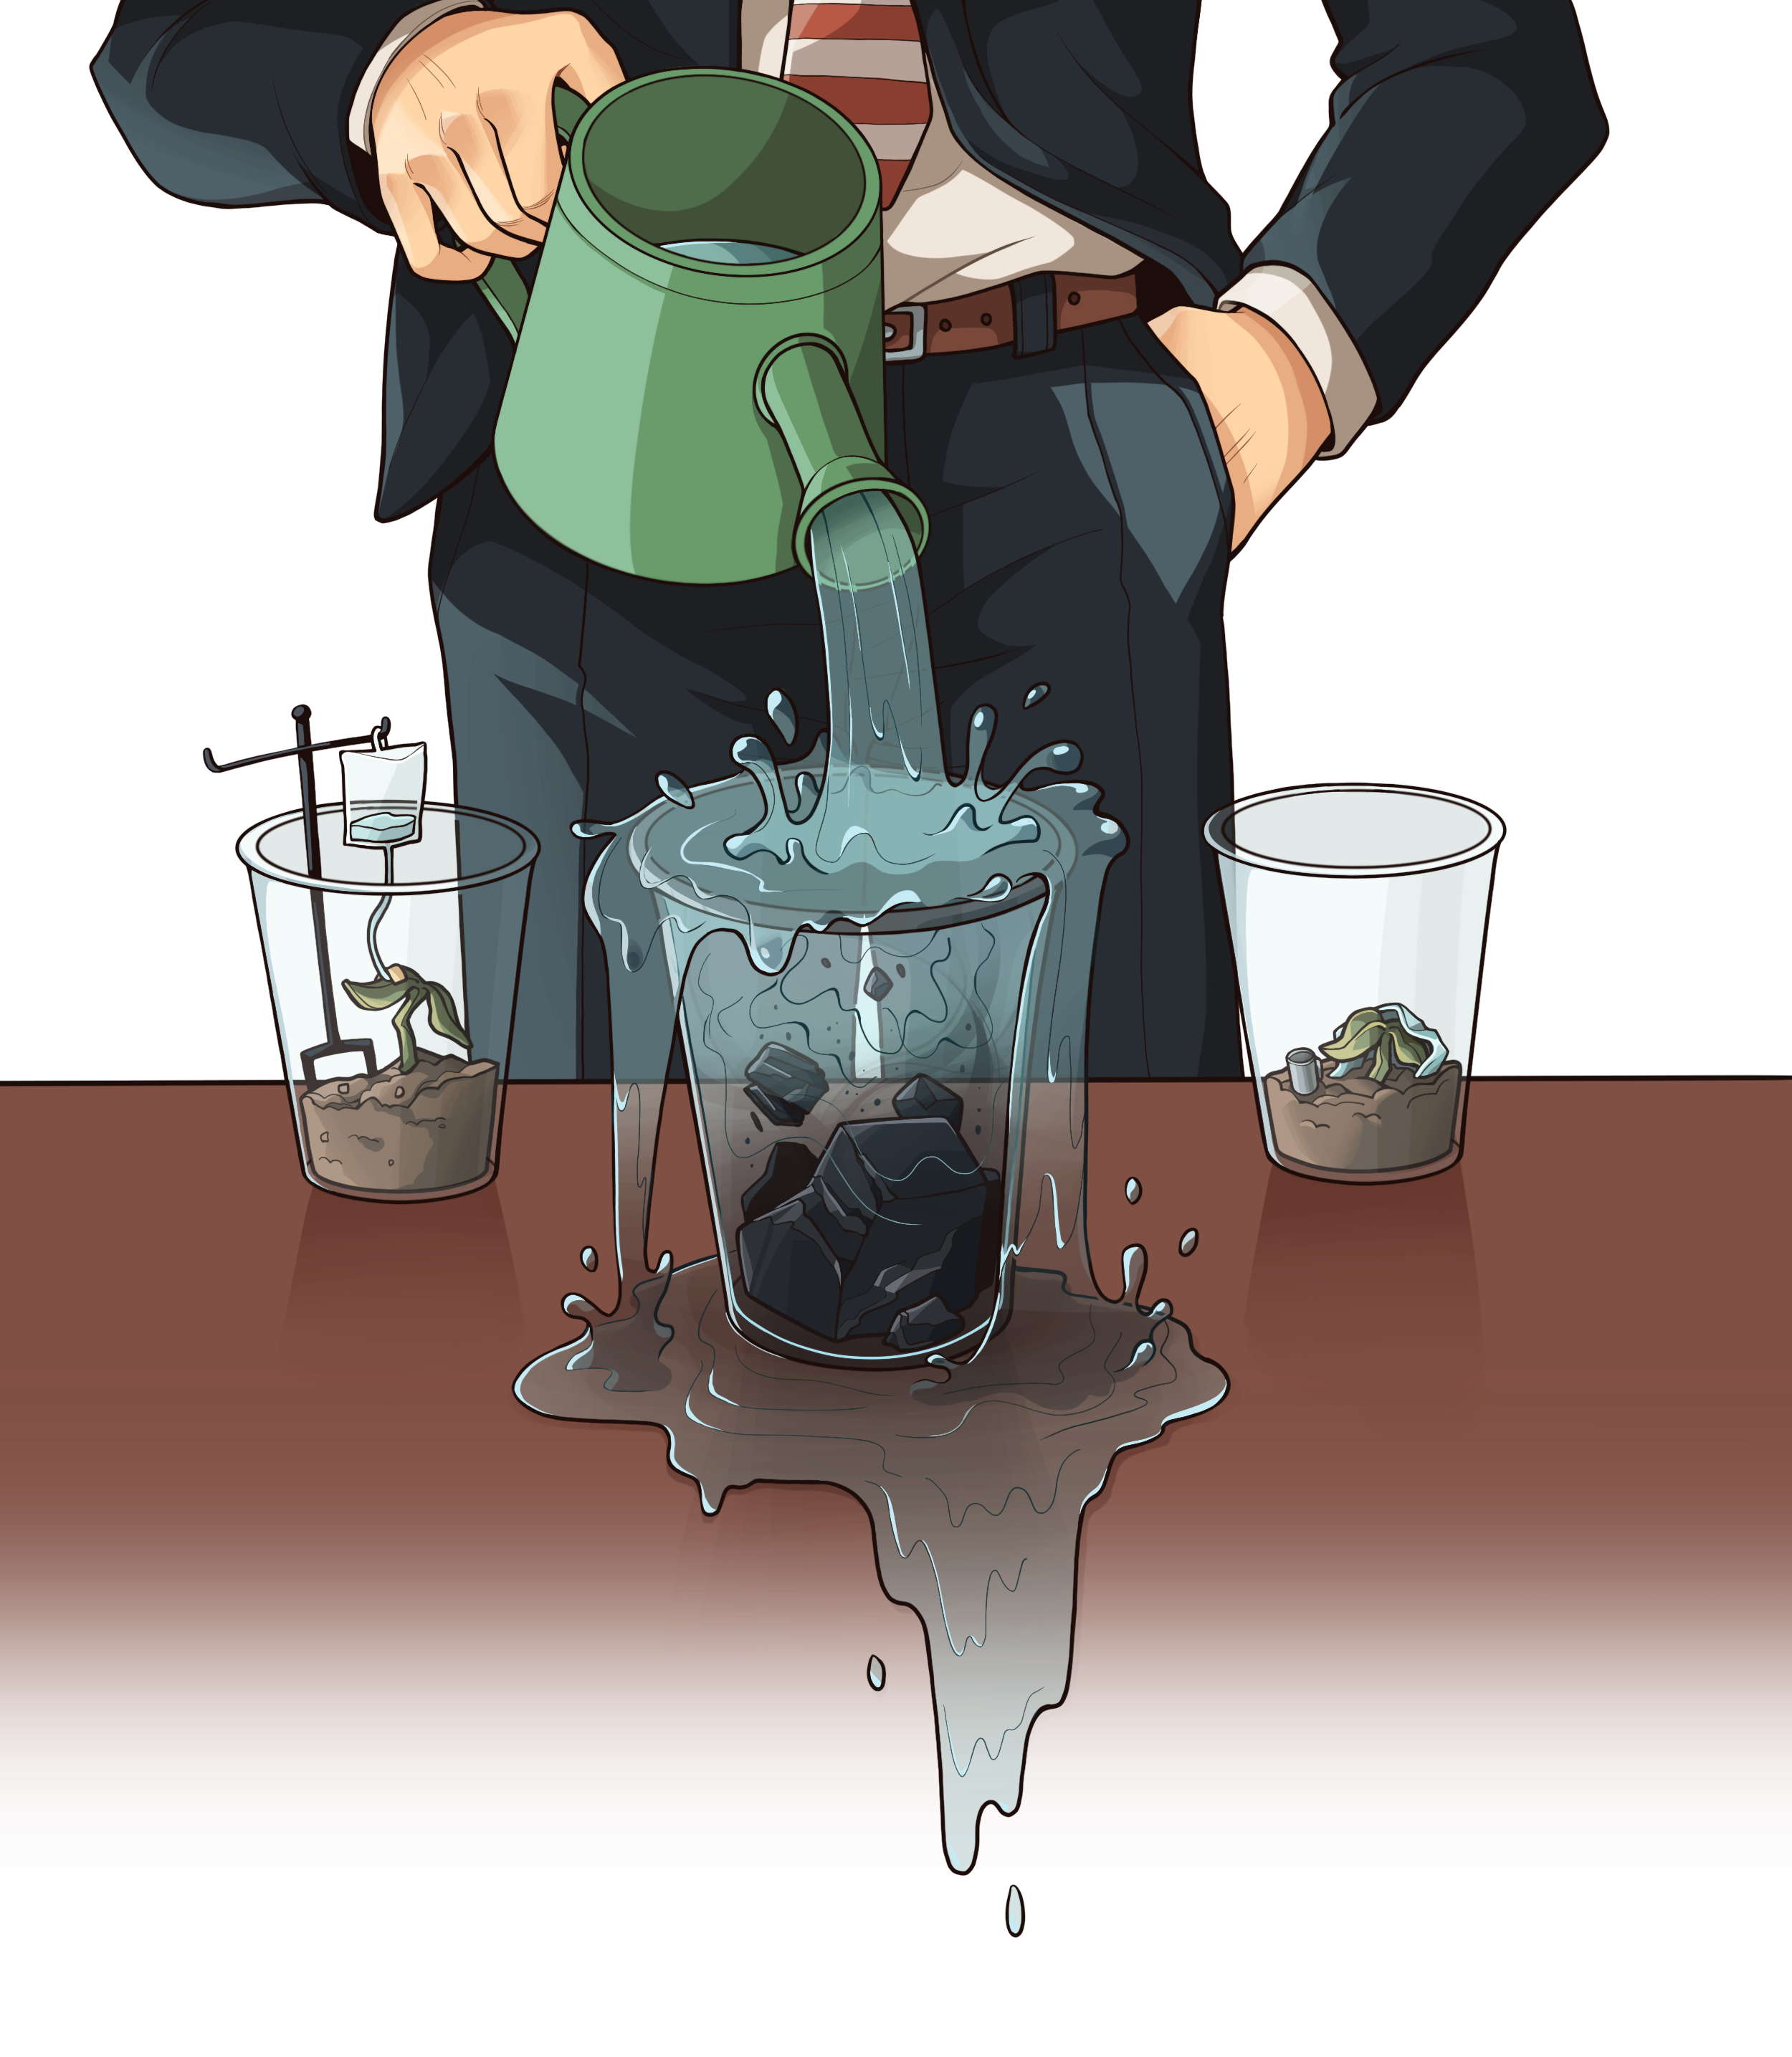 A man in a suit pours water into an overfilling cup of coal